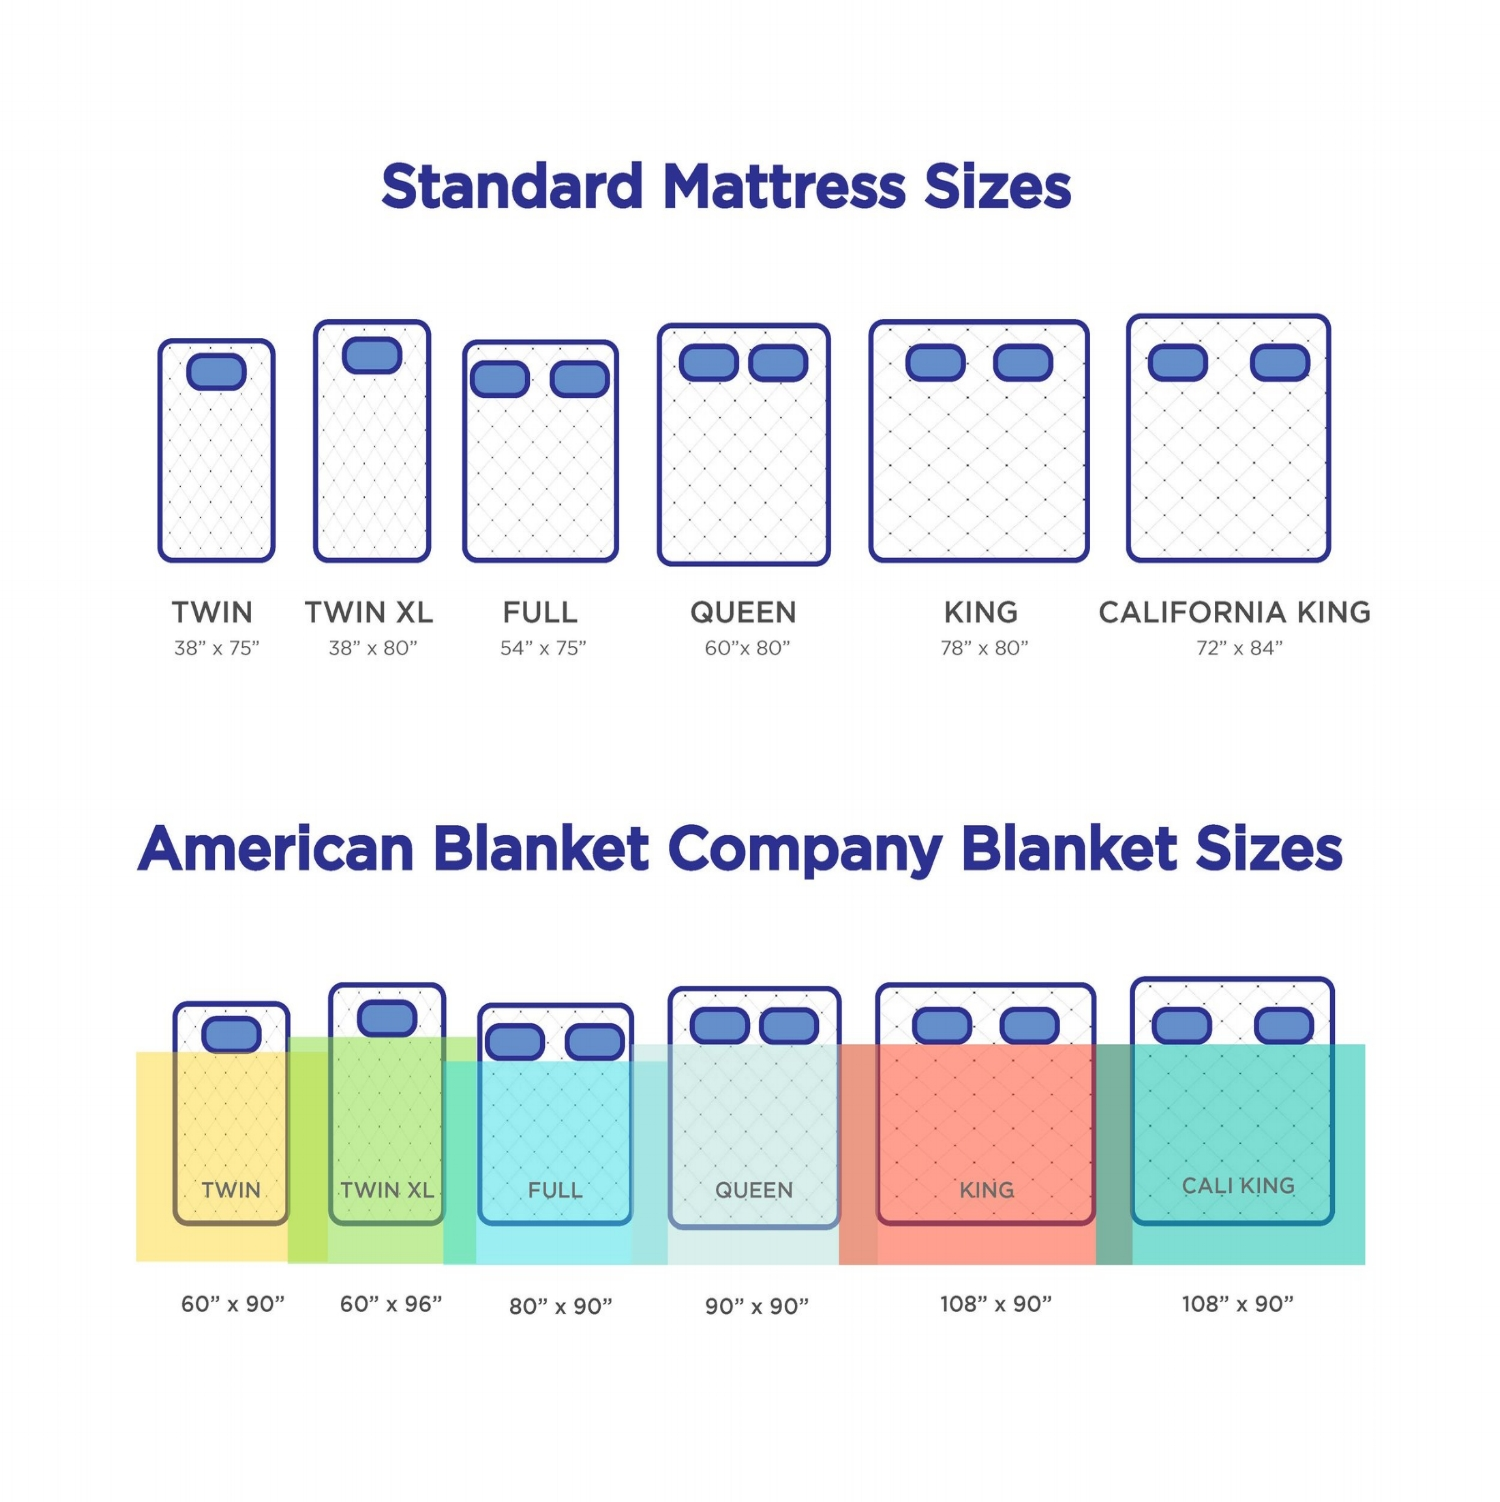 Standard Mattress Sizes Infographic